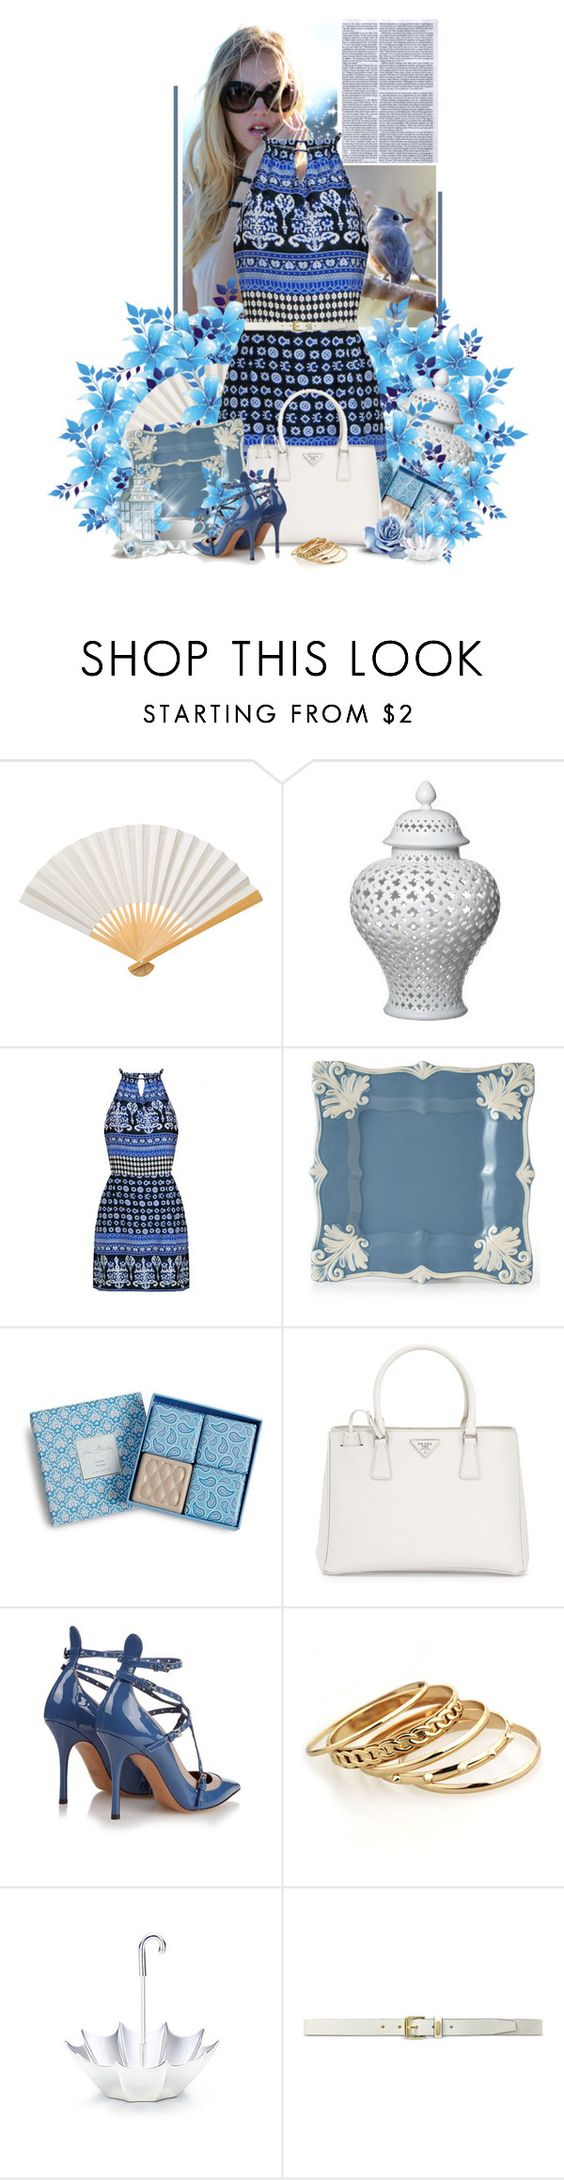 """""""ana"""" by ana-costa-queiroz ❤ liked on Polyvore featuring beauty, Cultural Intrigue, Elodie, Vera Bradley, Prada, Arte Italica, Valentino, Tiffany & Co. and Lauren Ralph Lauren"""